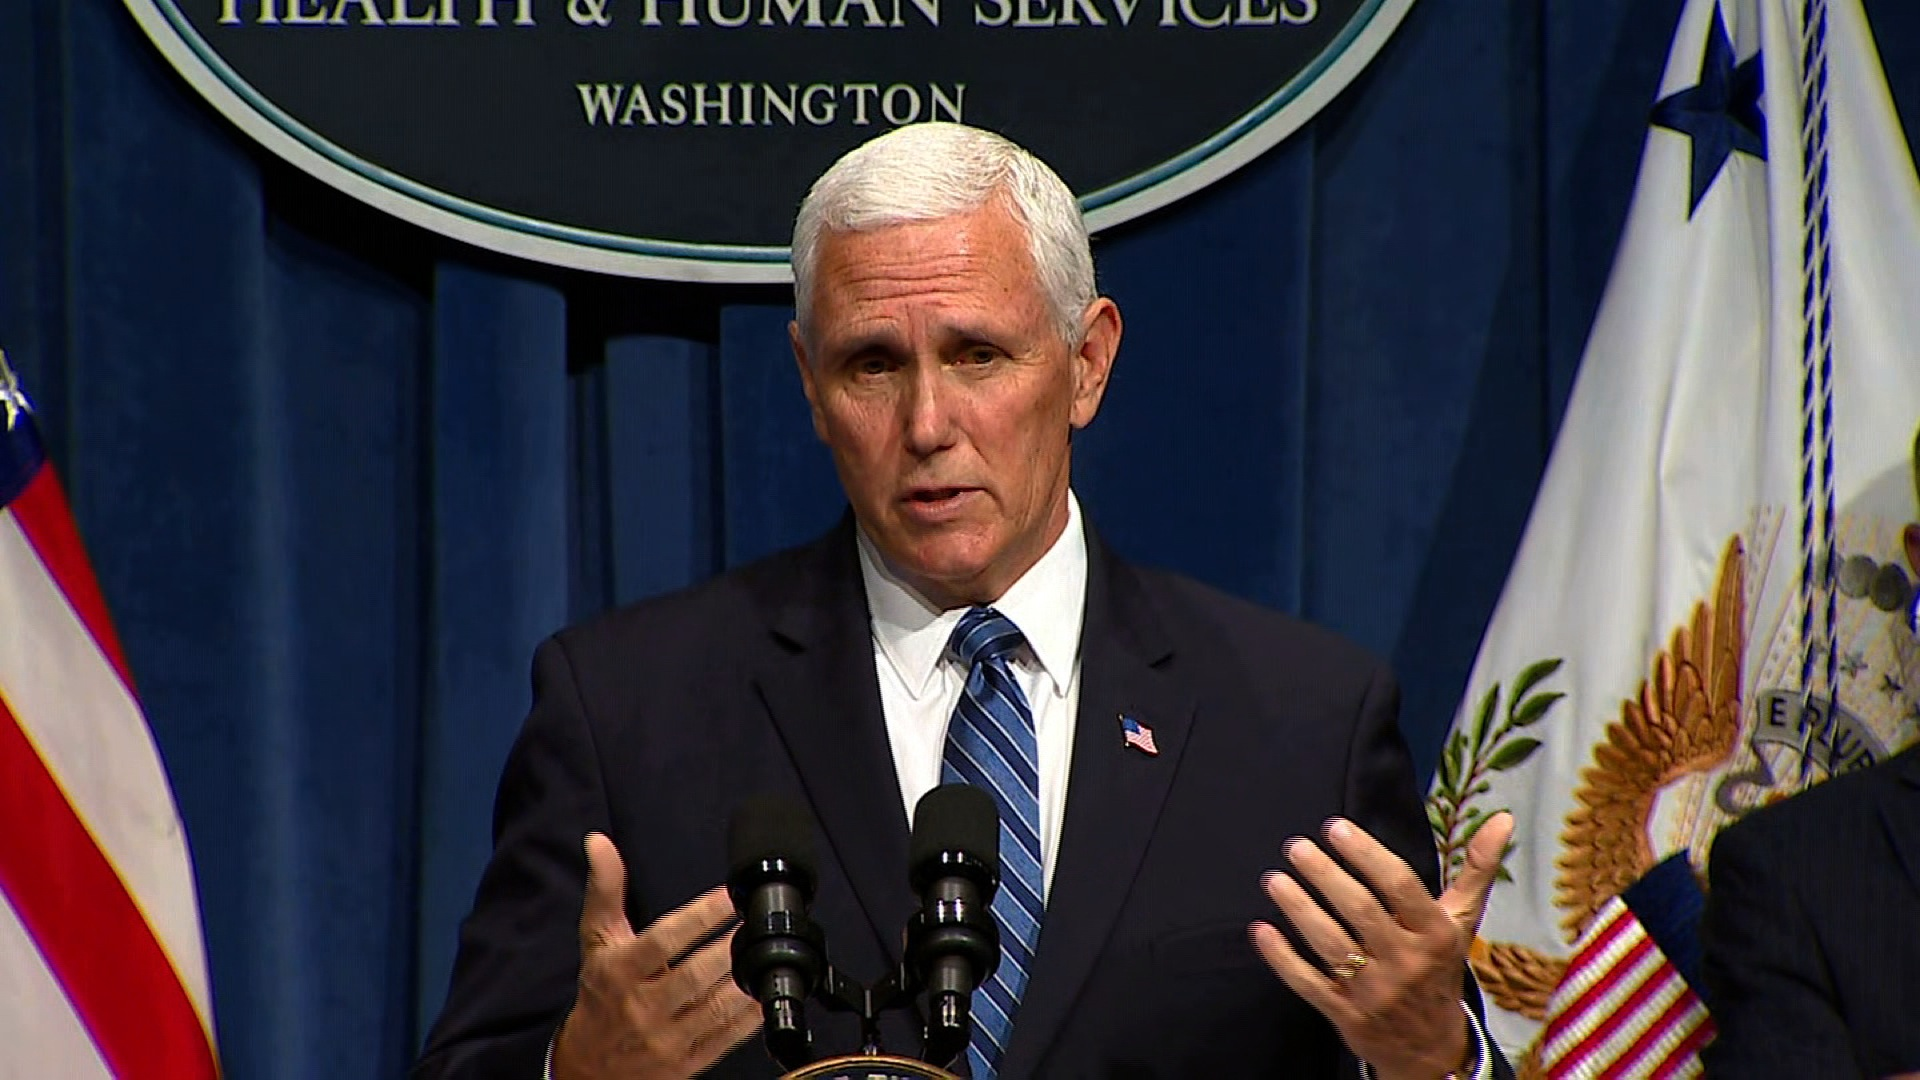 Fact Check: As the pandemic worsens, Pence paints a deceptively rosy picture